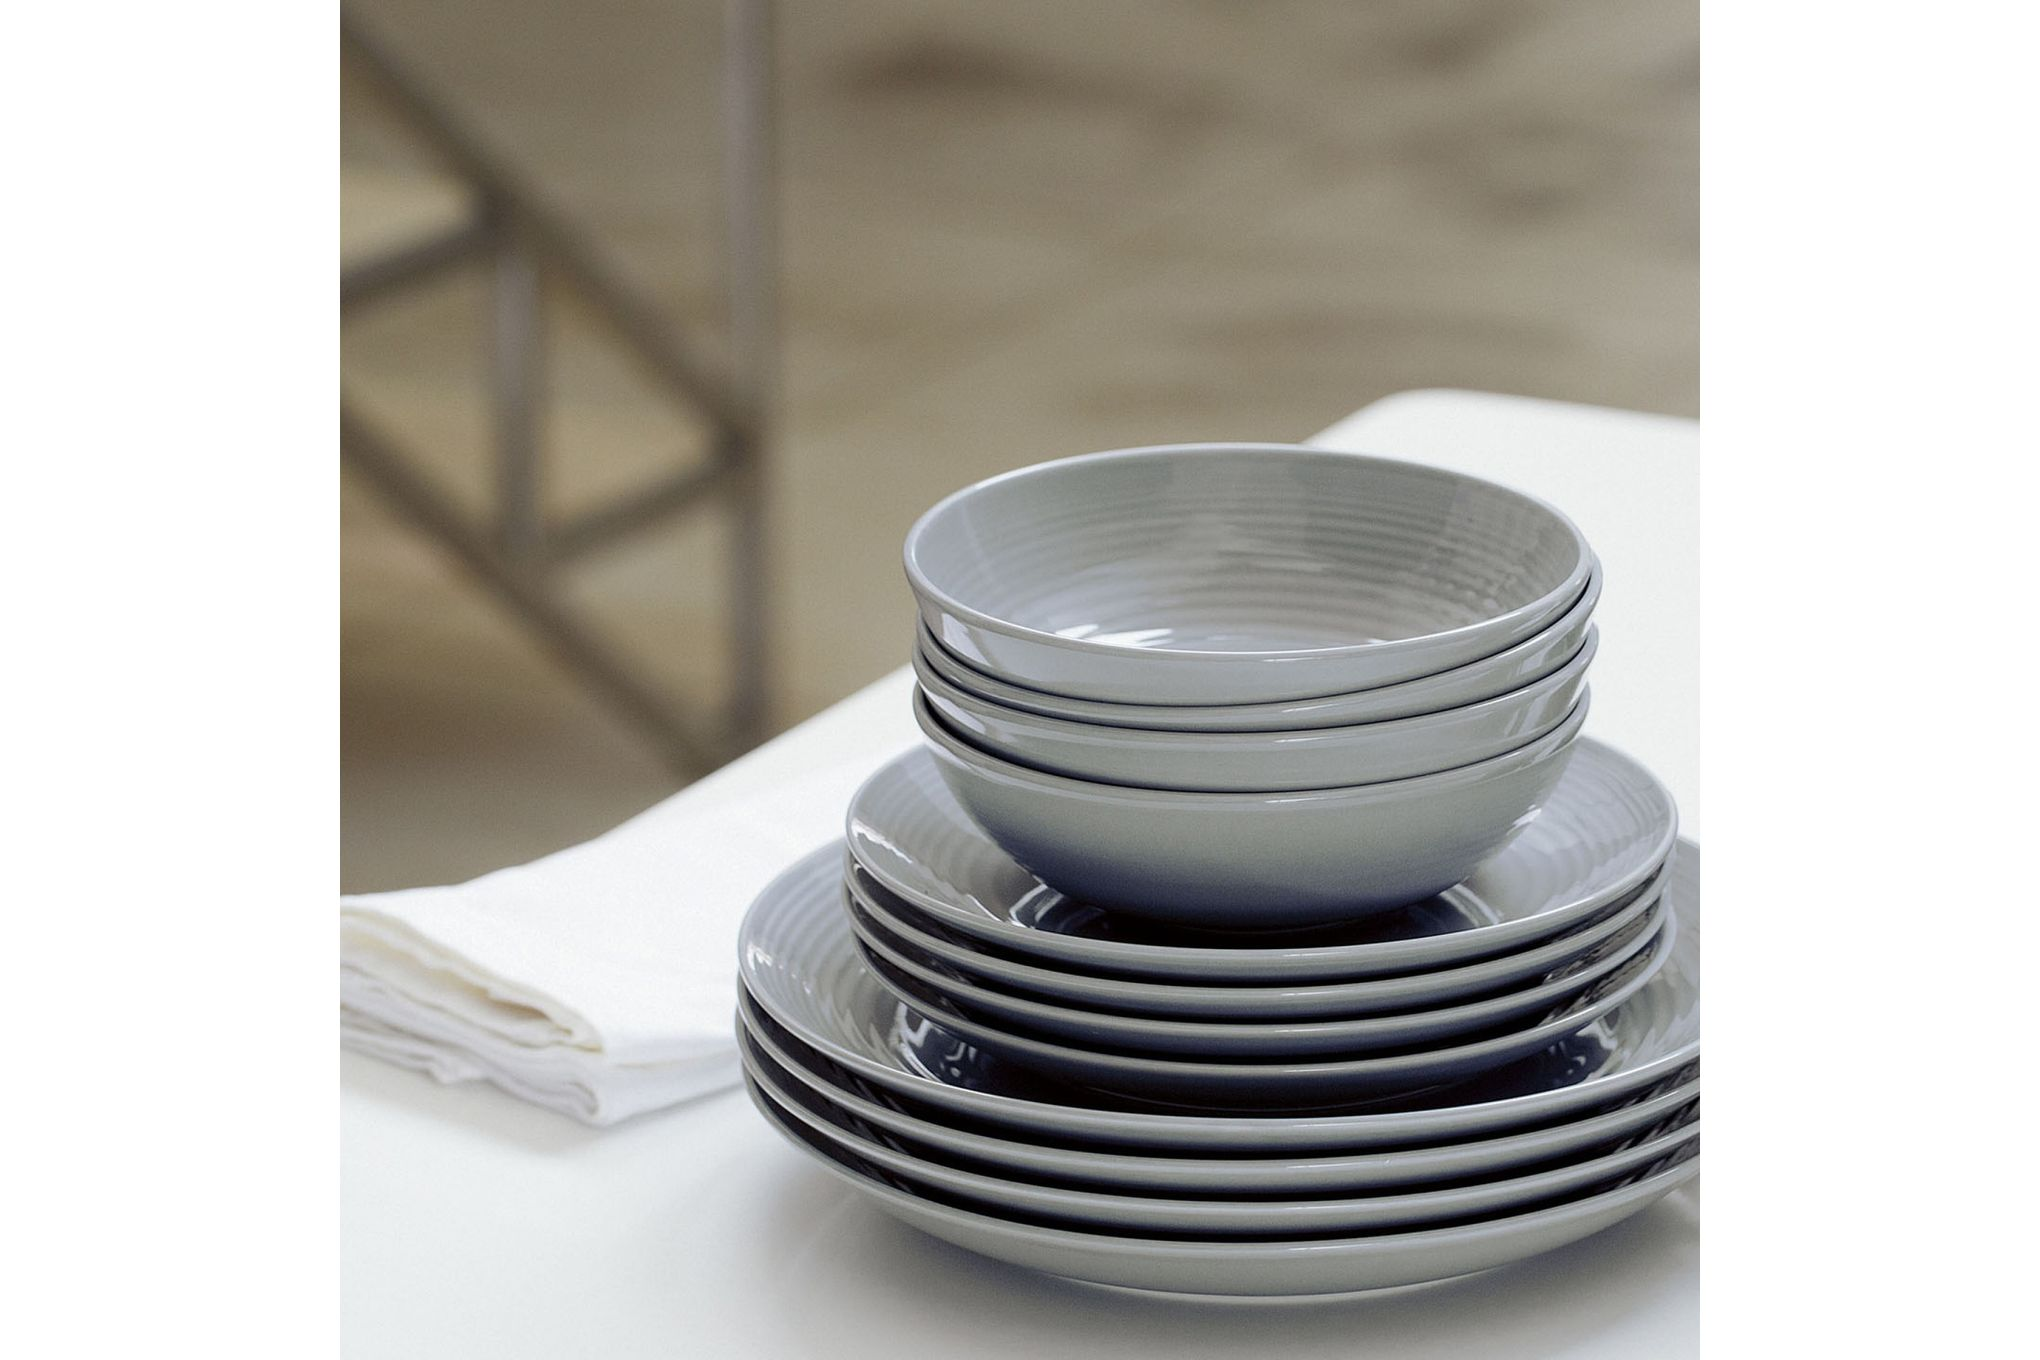 Gordon Ramsay for Royal Doulton Maze Dark Grey 12 Piece Set 4 x Plate 28cm, Plate 22cm, Bowl 18cm thumb 2